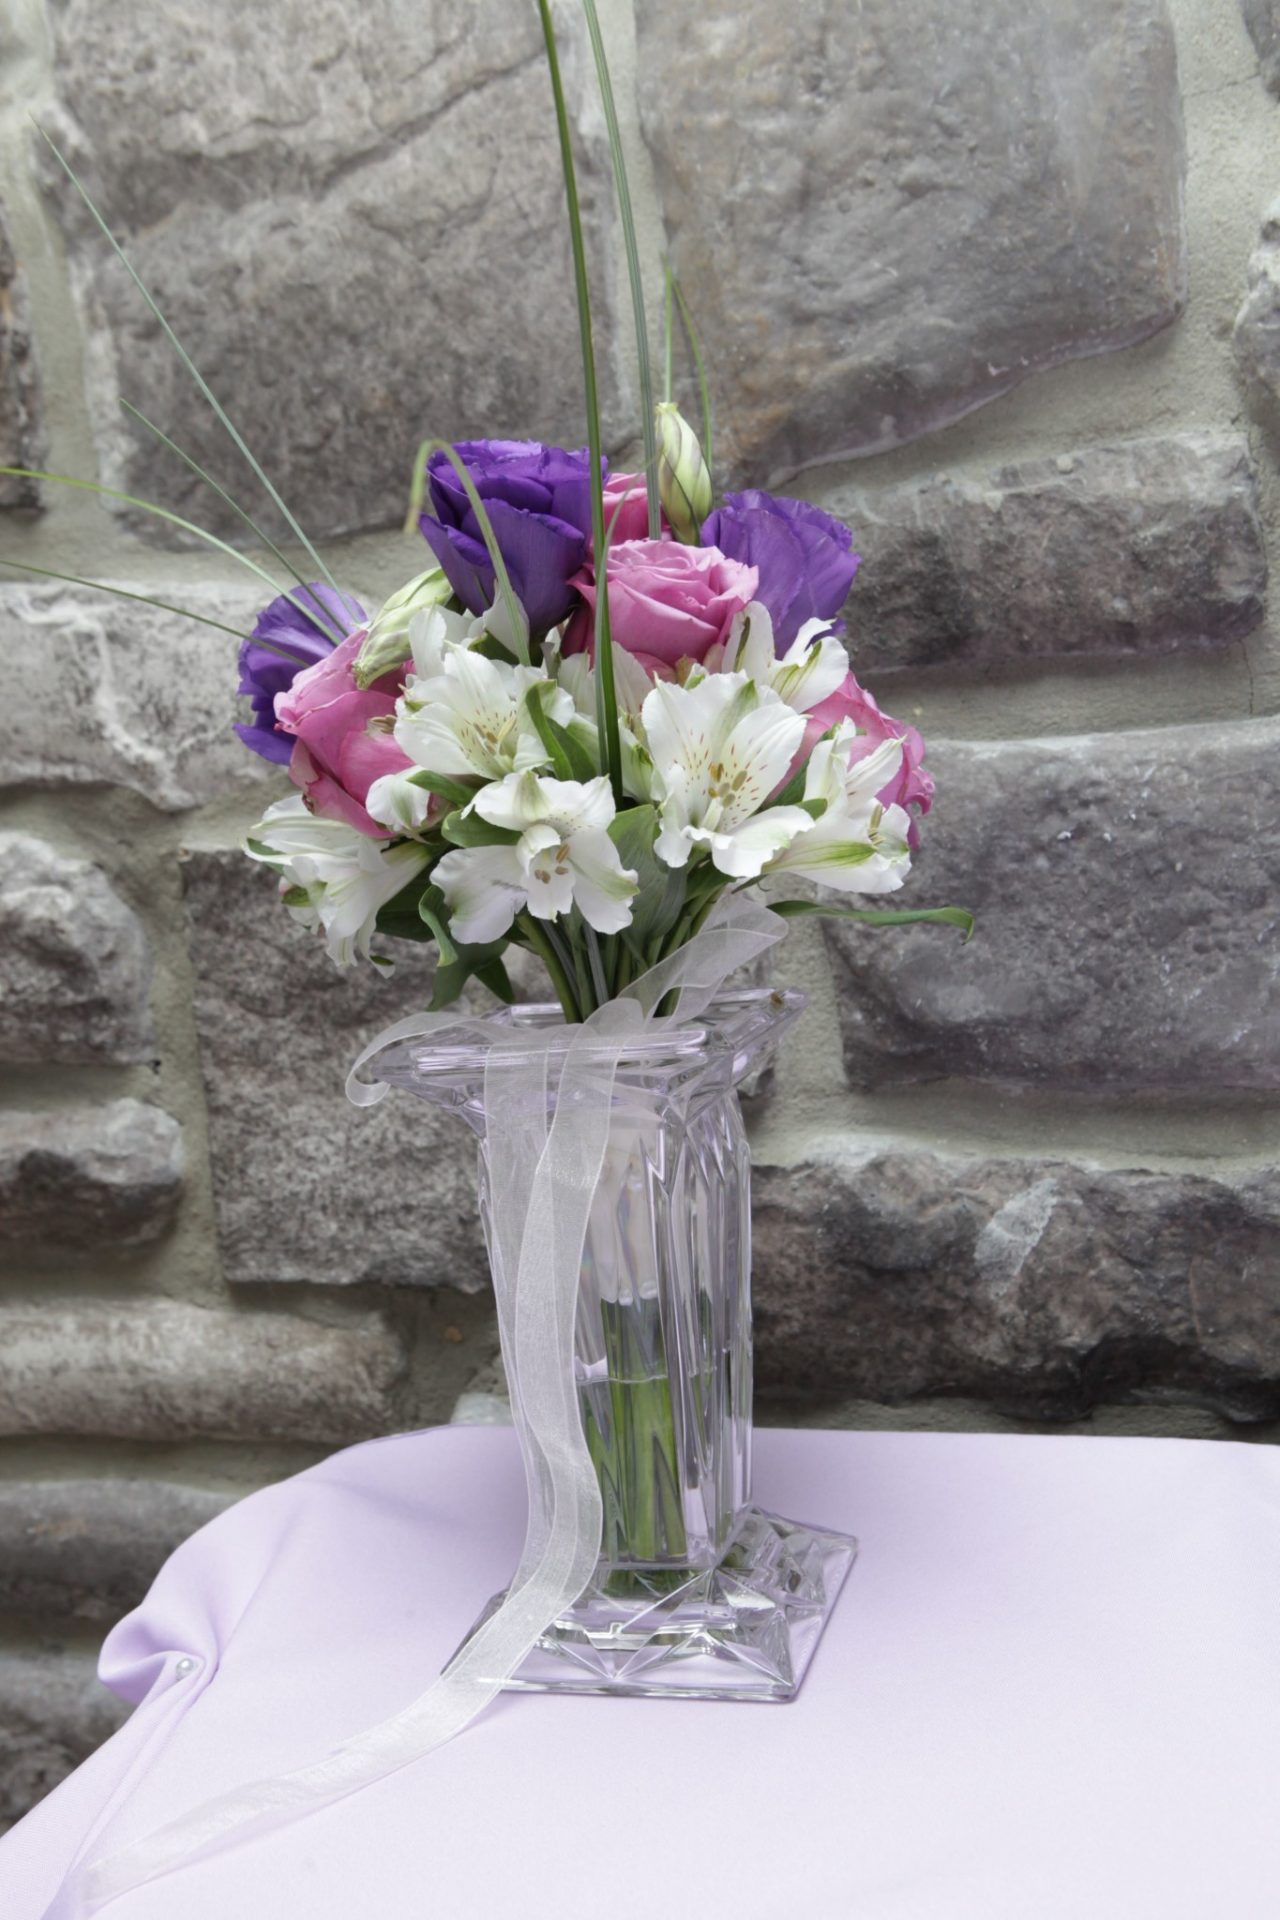 Bride and groom chose pink, purple, and white color scheme as seen in this floral arrangement used as table centerpiece.